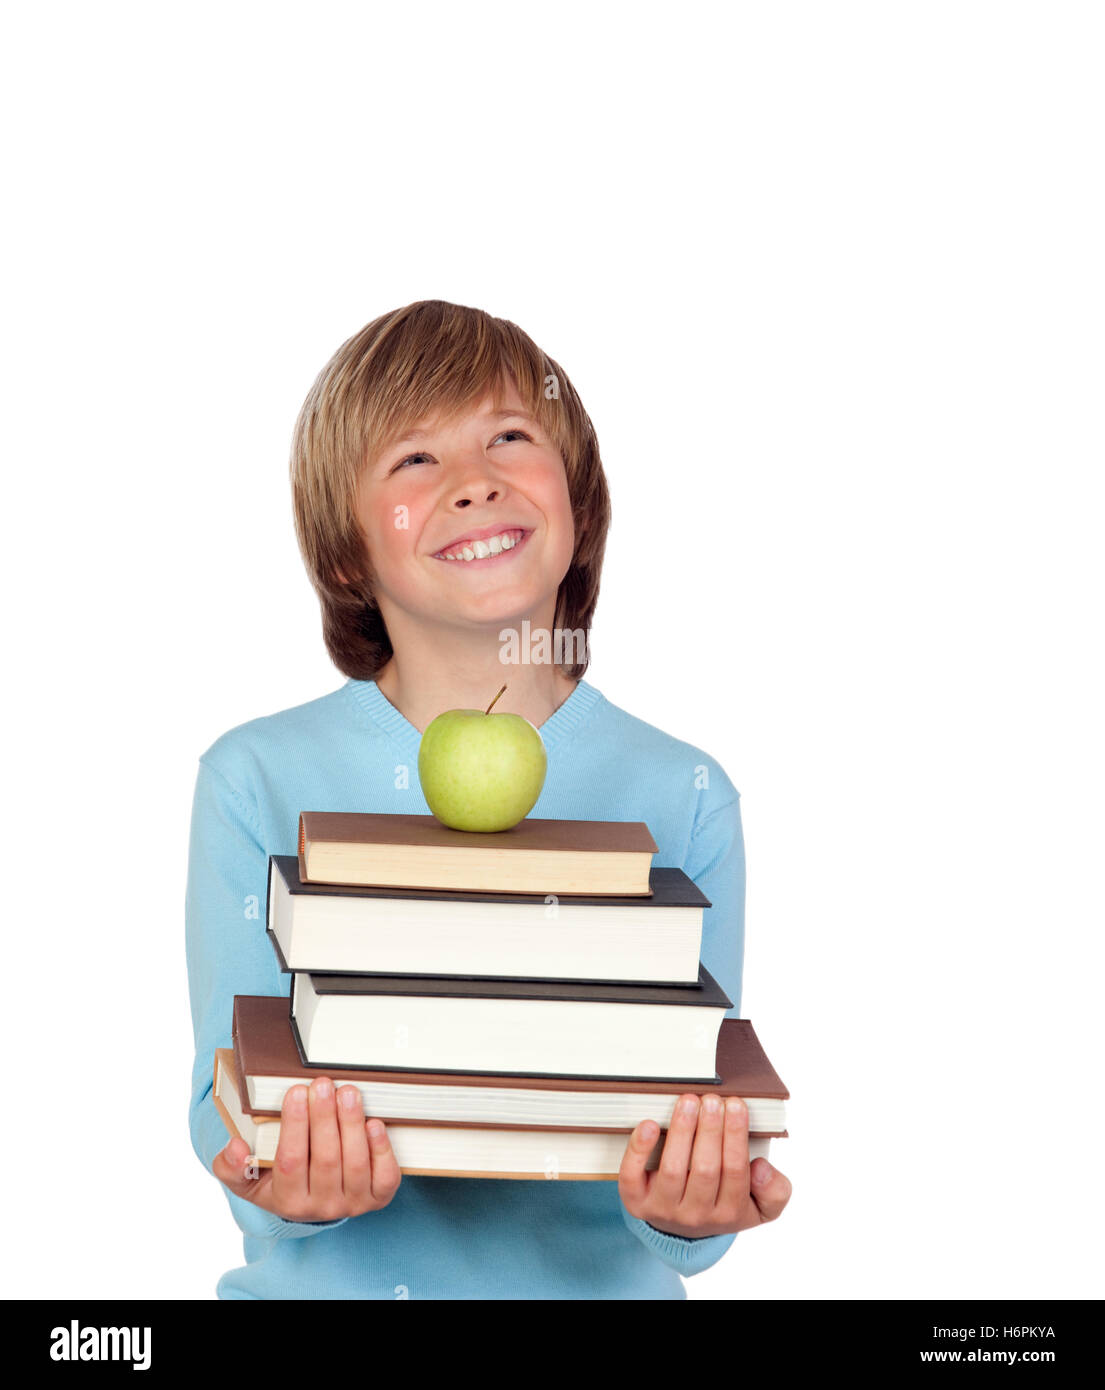 Preteen boy with a many books looking up isolated on white background - Stock Image